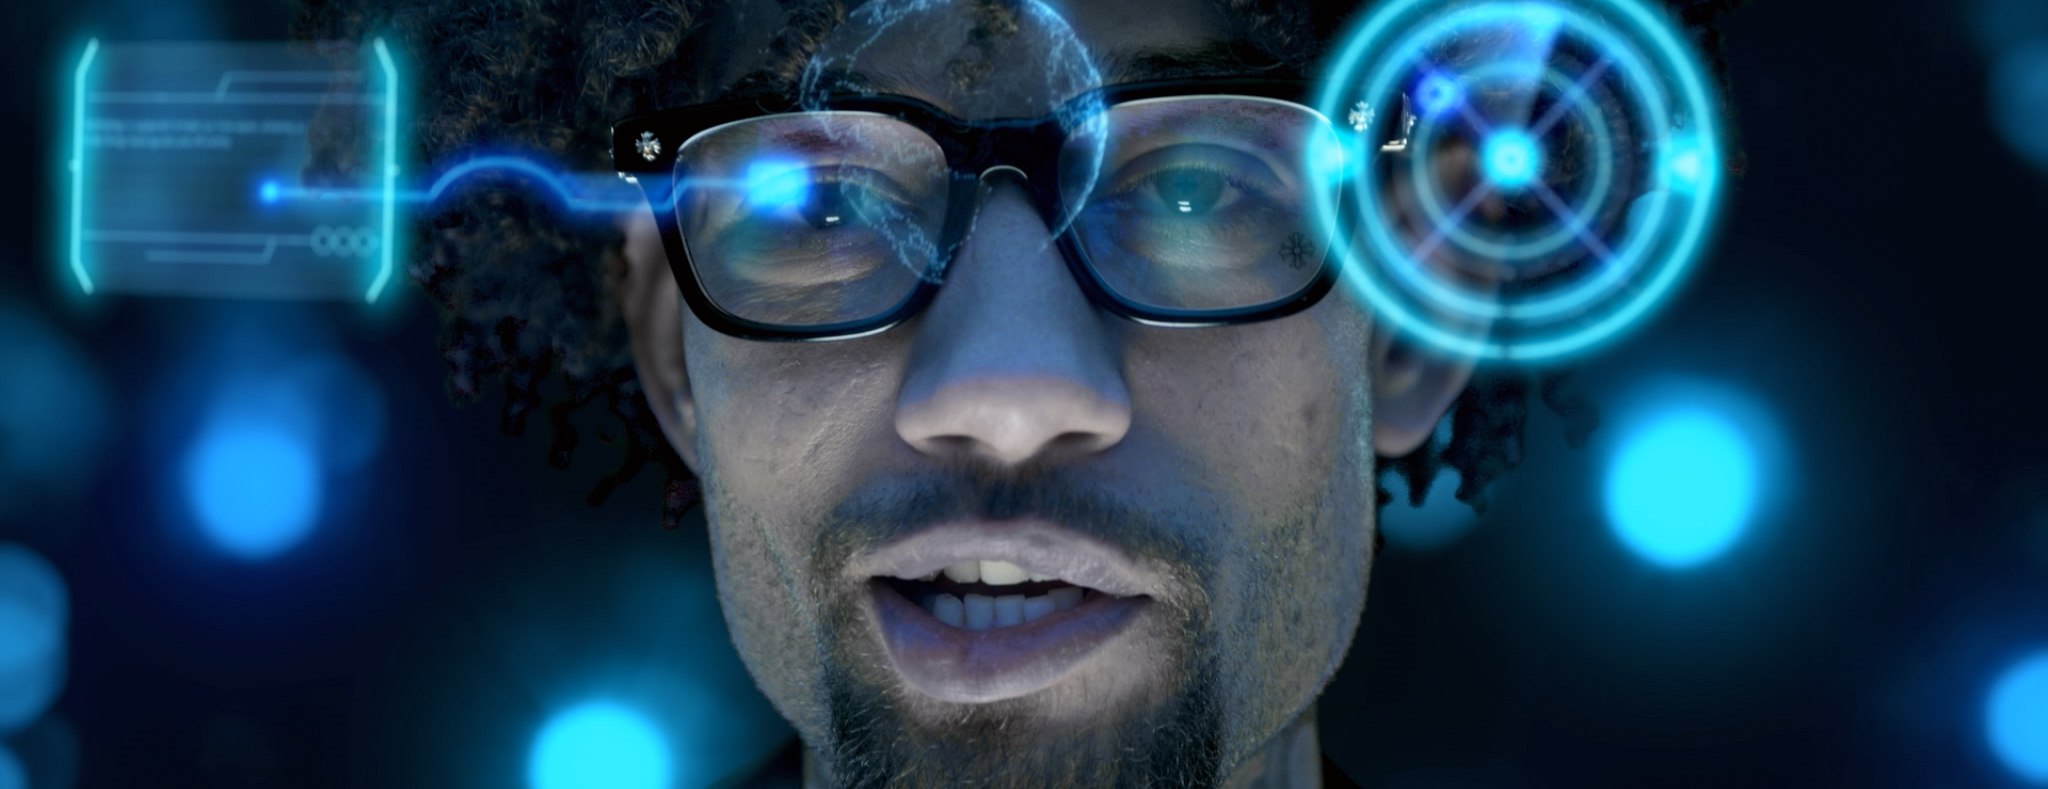 PNB ROCK FT. TEE GRIZZLEY - GO TO MARS (OFFICIAL VIDEO) - DIRECTED BY MAJIK FILMS.mov.00_02_23_09.Still181.jpg